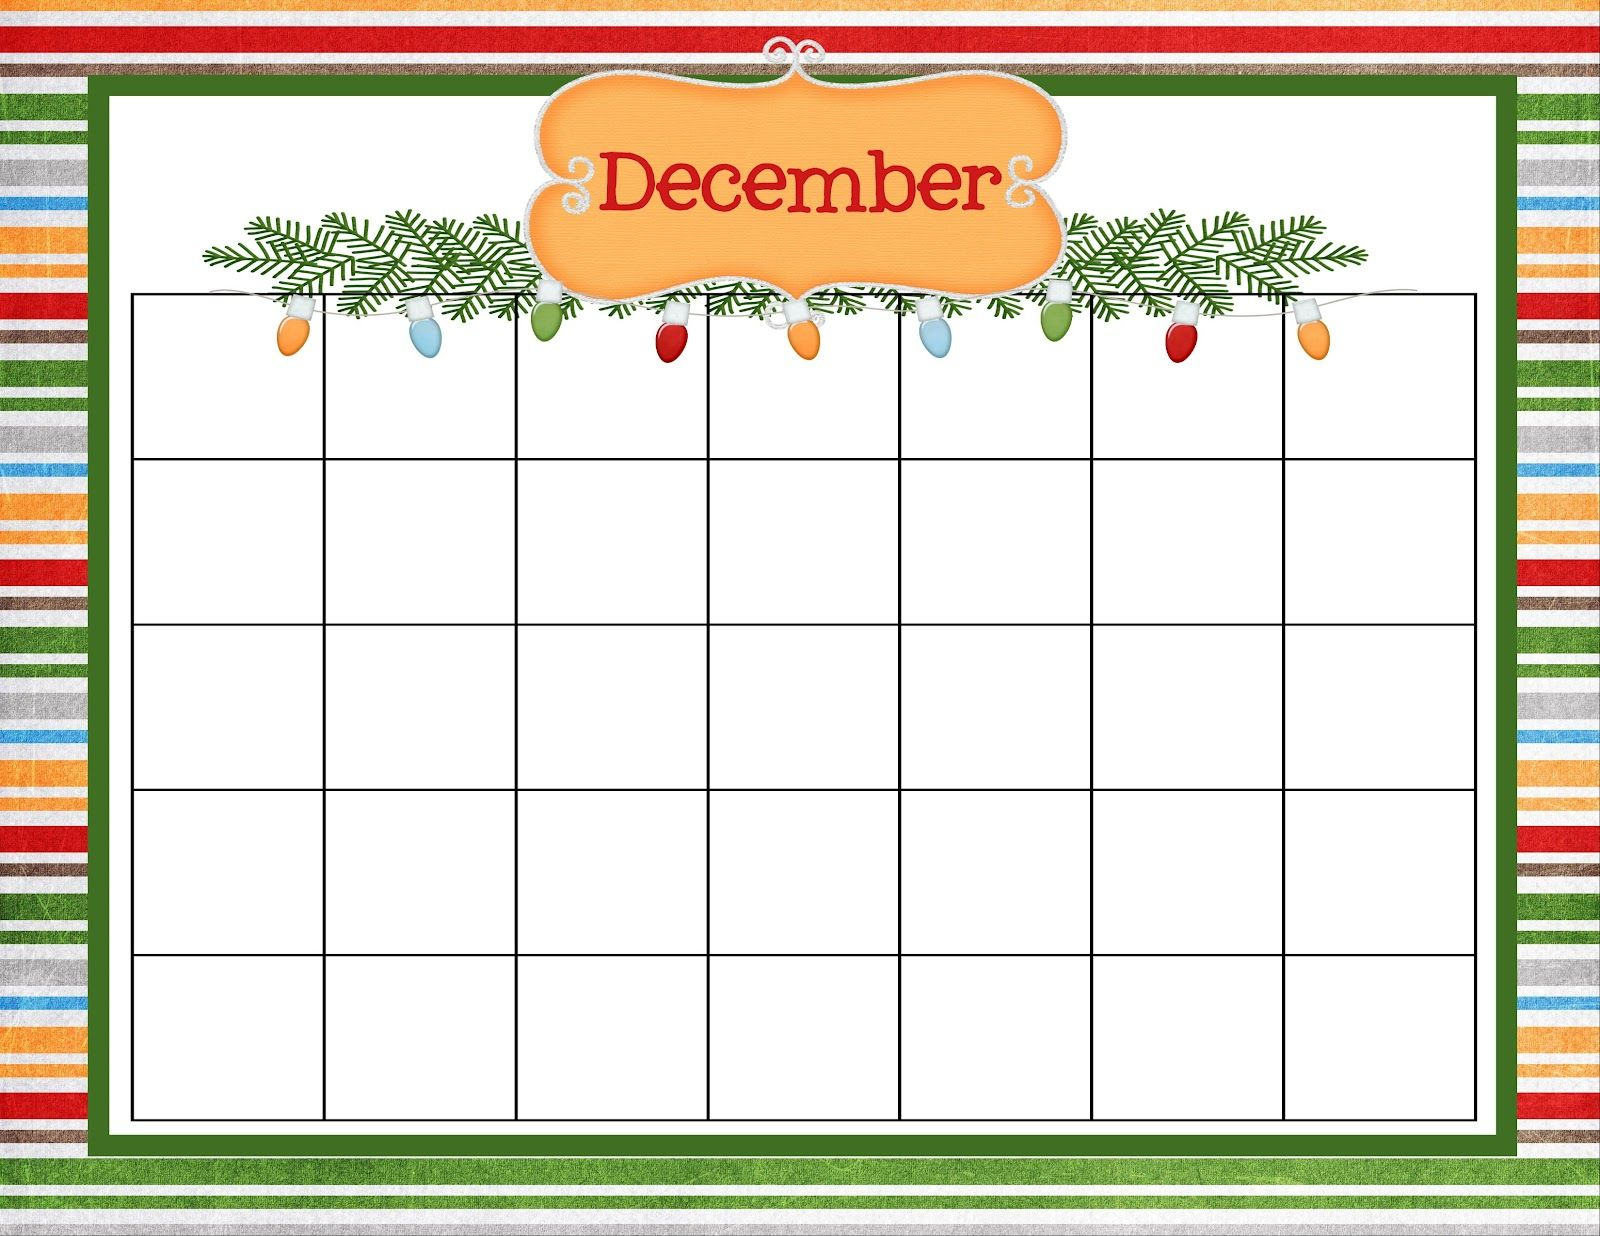 The Polka Dot Posie Christmas Organizing Printables To Get You In The Holiday Spirit A Little